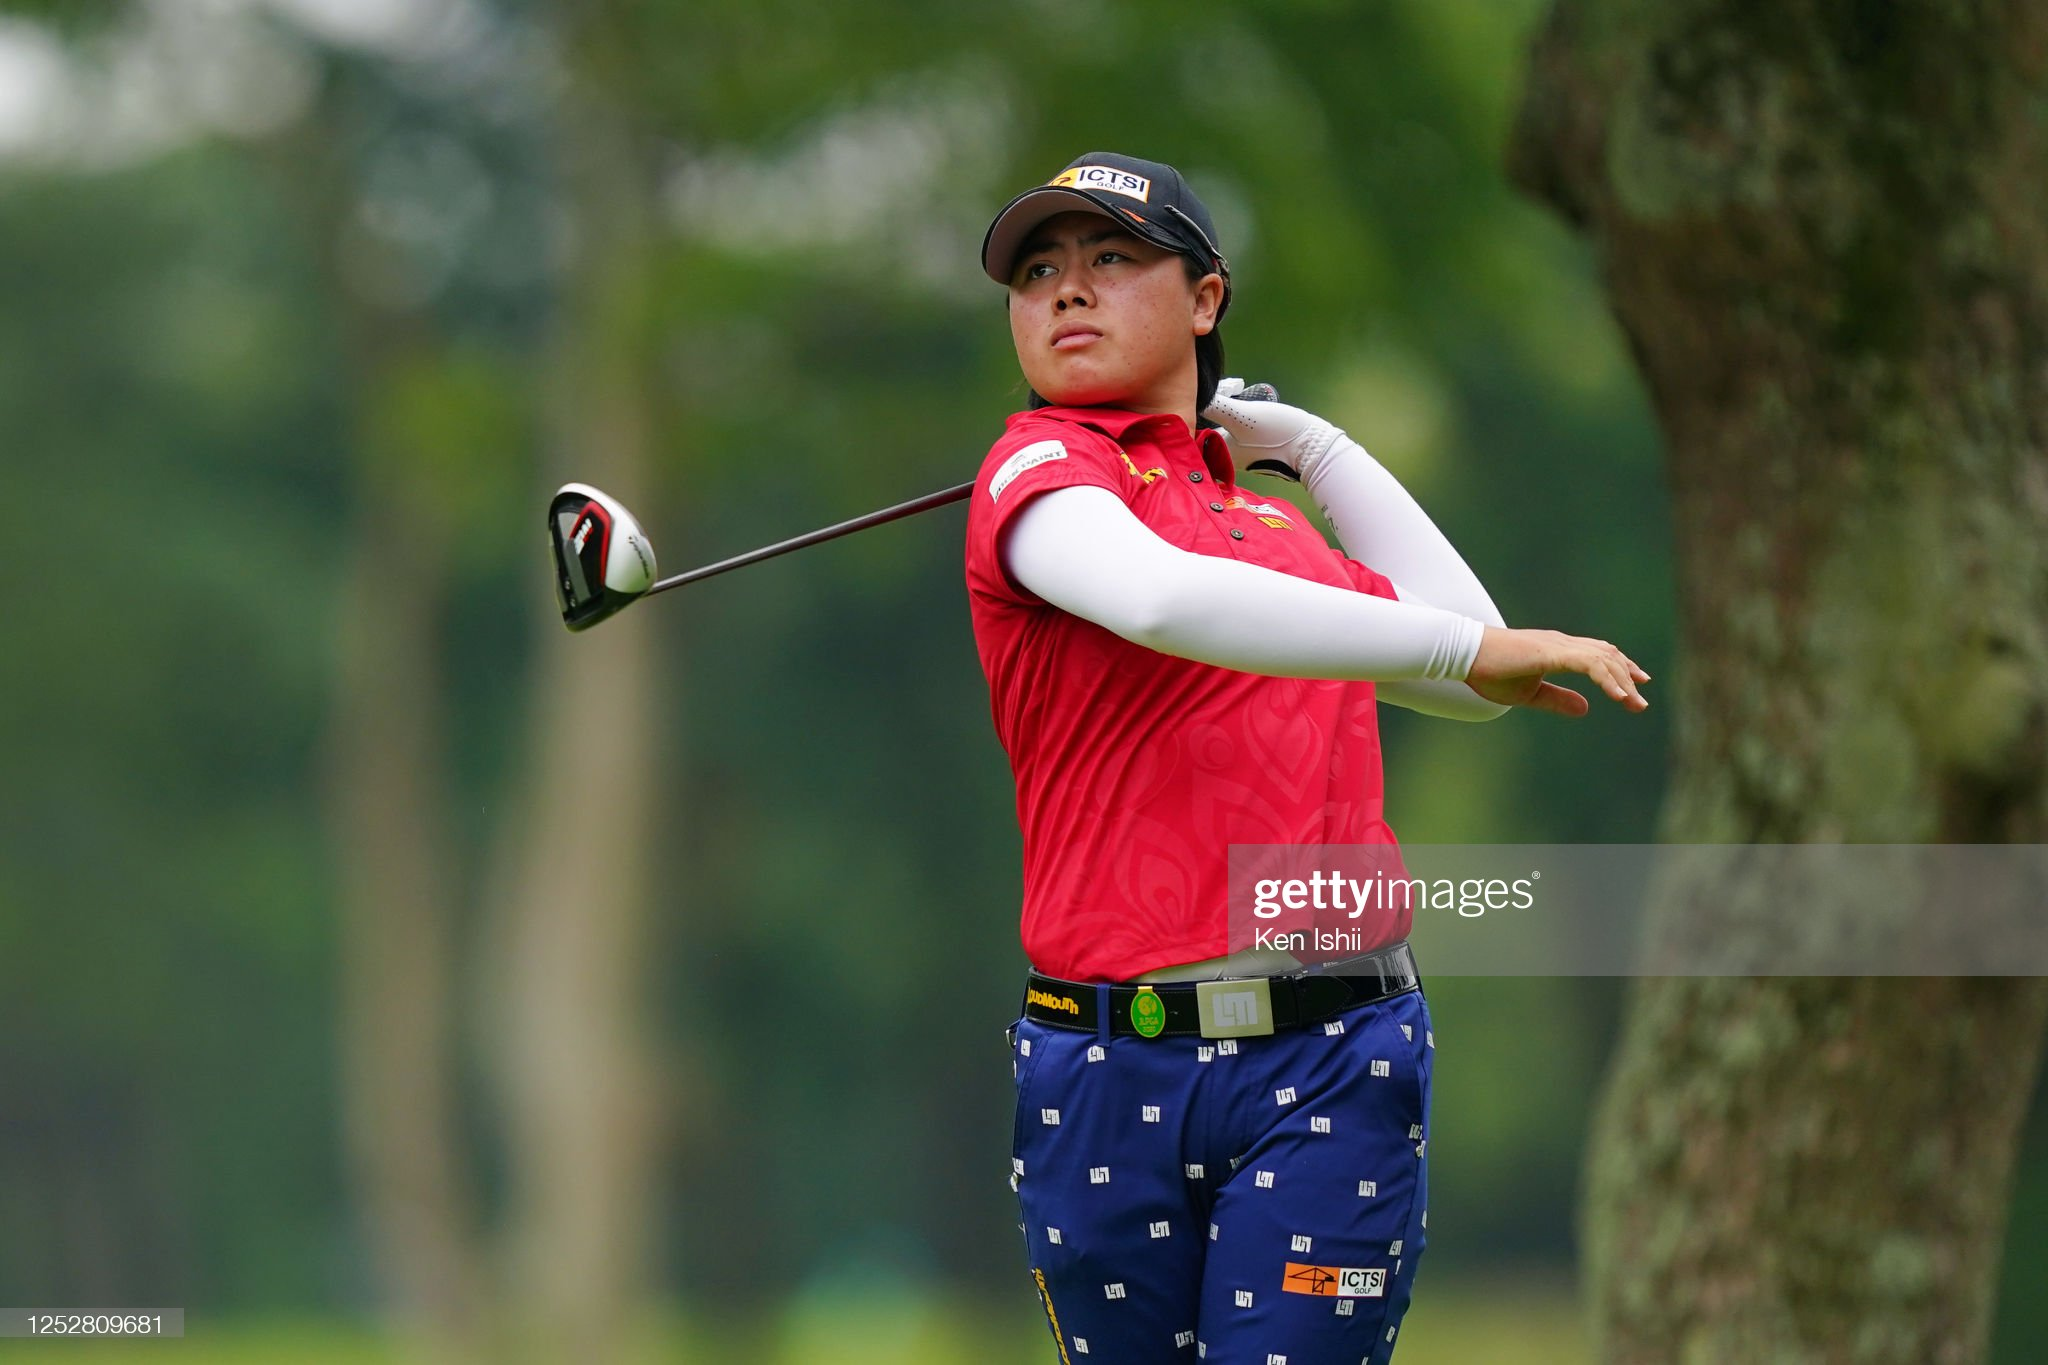 https://media.gettyimages.com/photos/yuka-saso-of-japan-hits-her-tee-shot-on-the-3rd-hole-during-the-third-picture-id1252809681?s=2048x2048